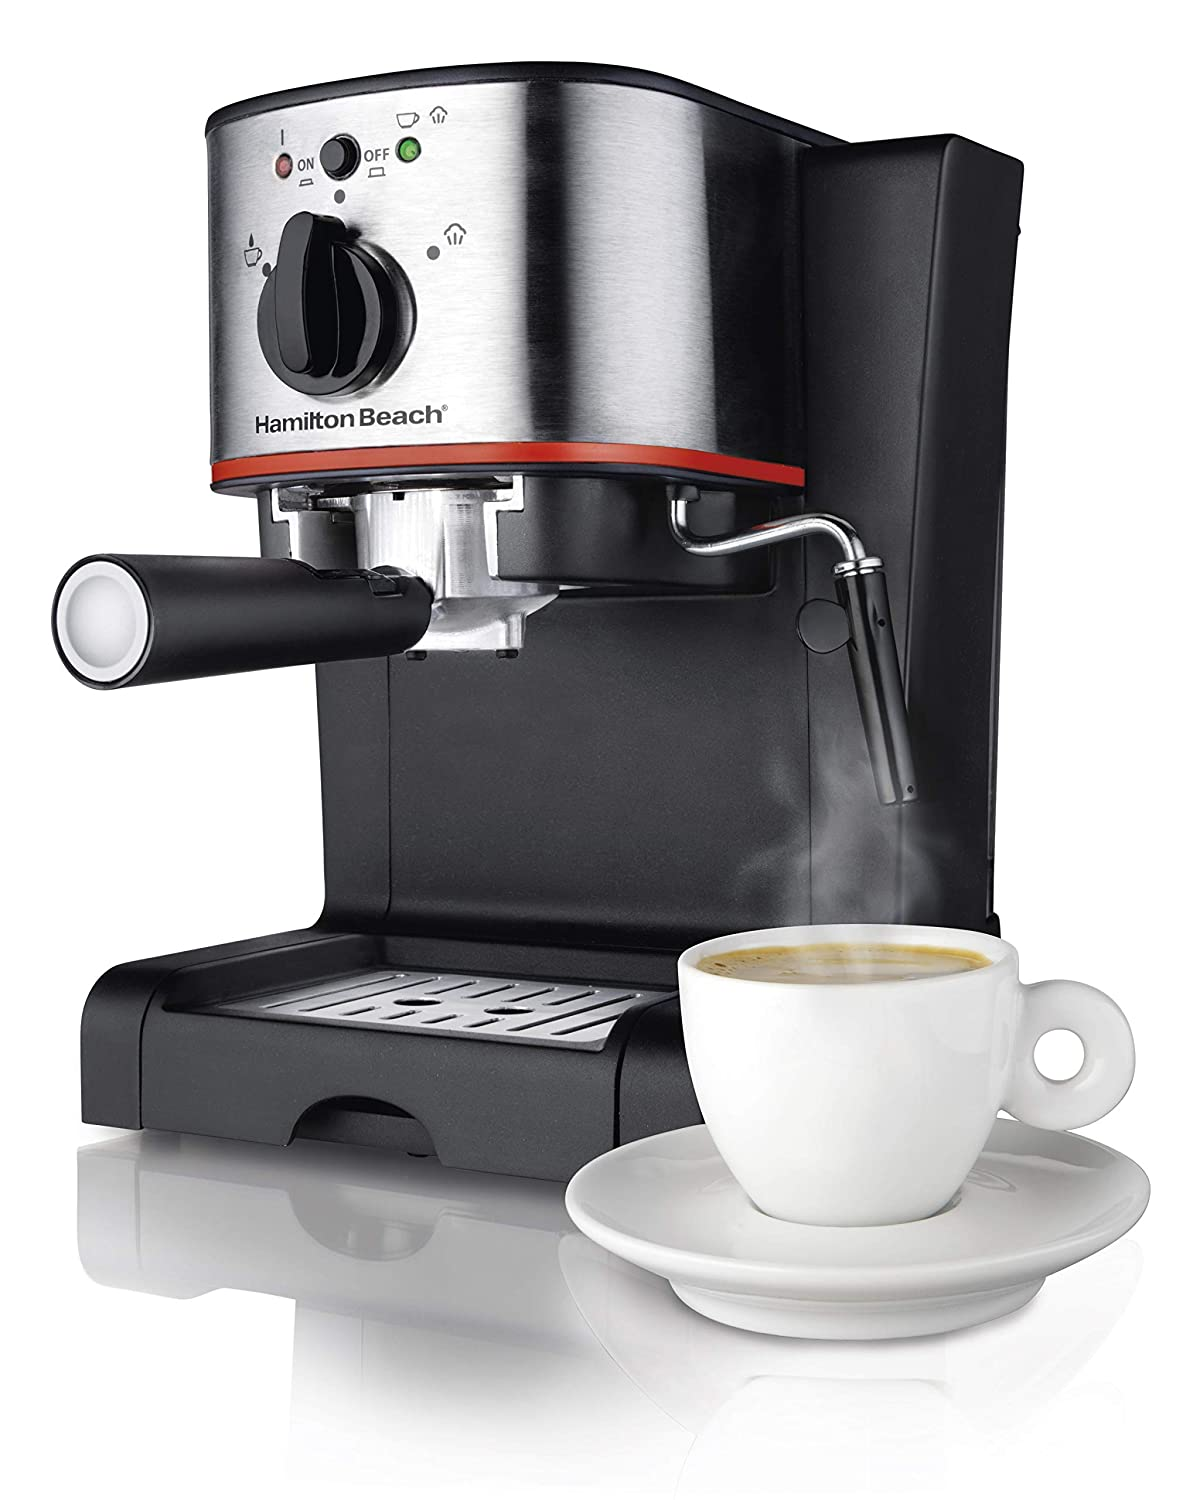 Hamilton-Beach 40792 Espresso and Cappuccino Maker, Black Hamilton Beach